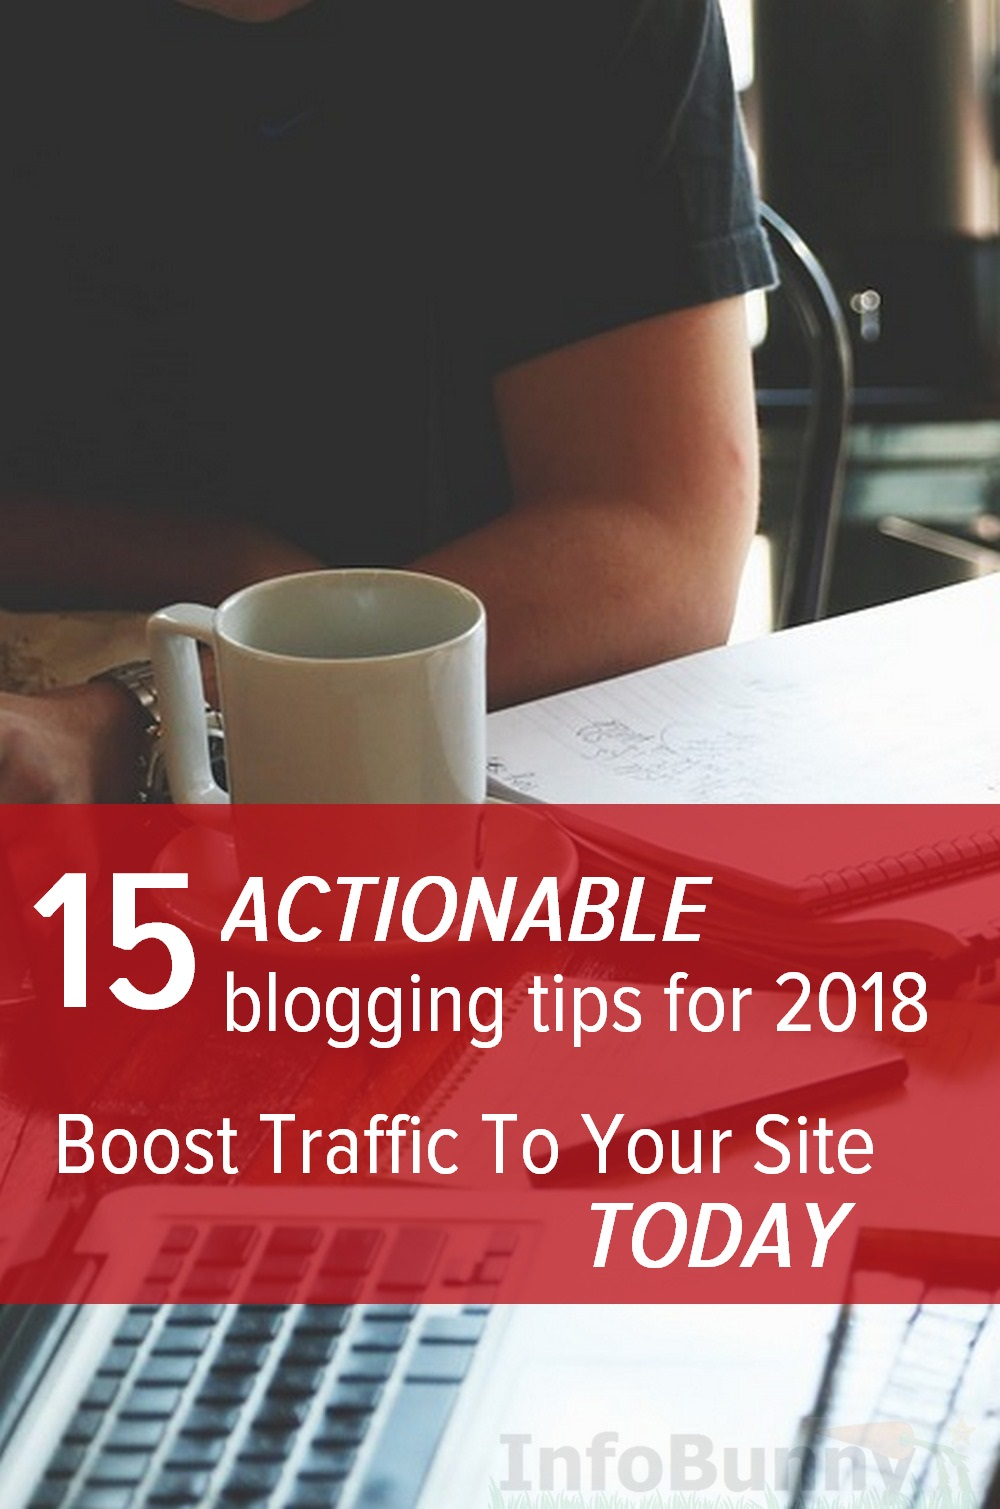 15 actionable blogging tips for 2018